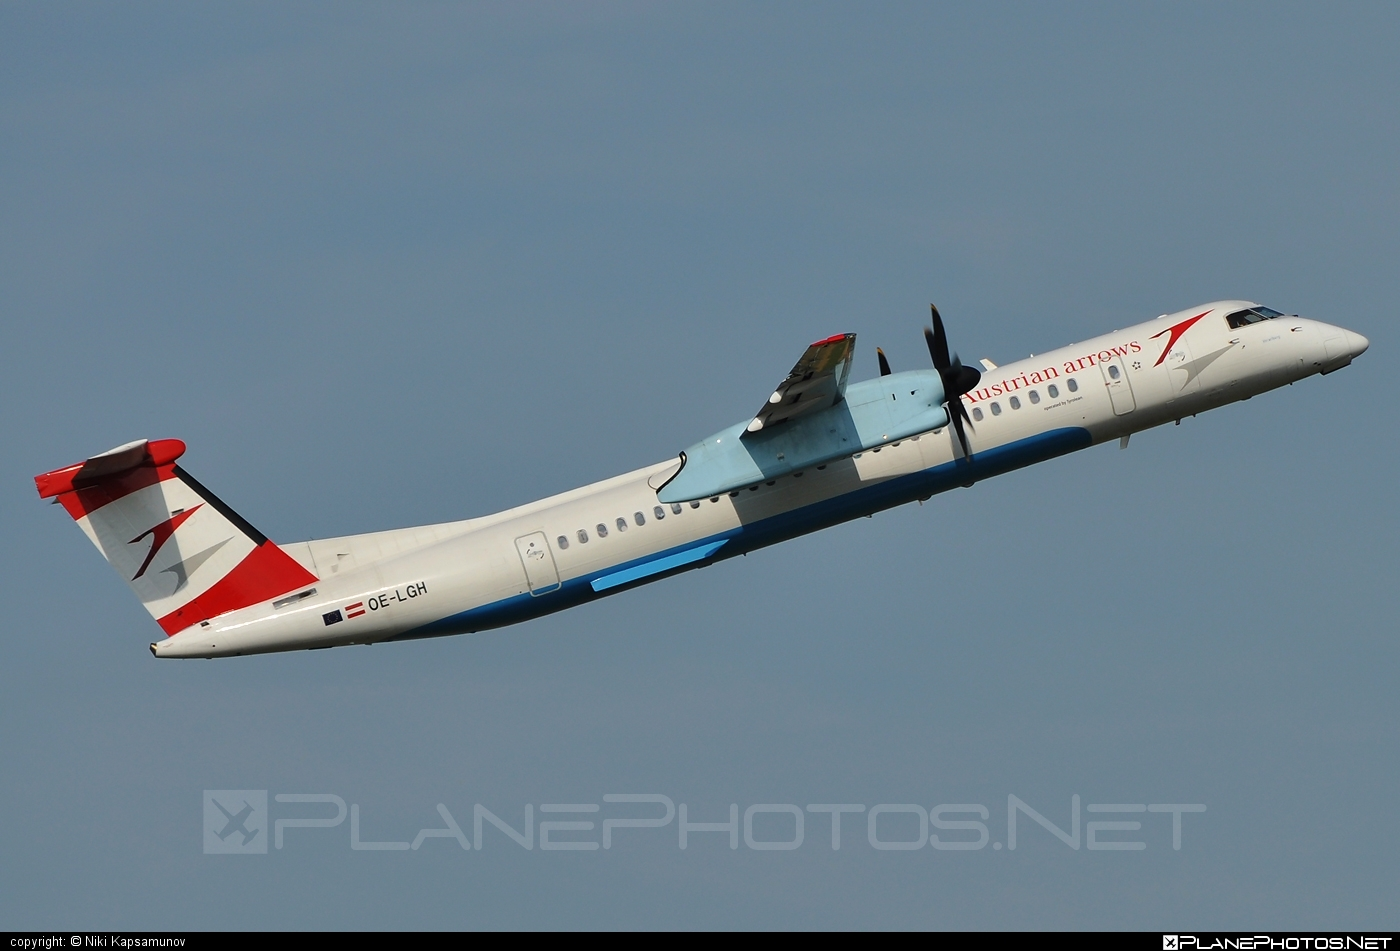 Bombardier DHC-8-Q402 Dash 8 - OE-LGH operated by Austrian arrows (Tyrolean Airways) #bombardier #dash8 #dhc8 #dhc8q402